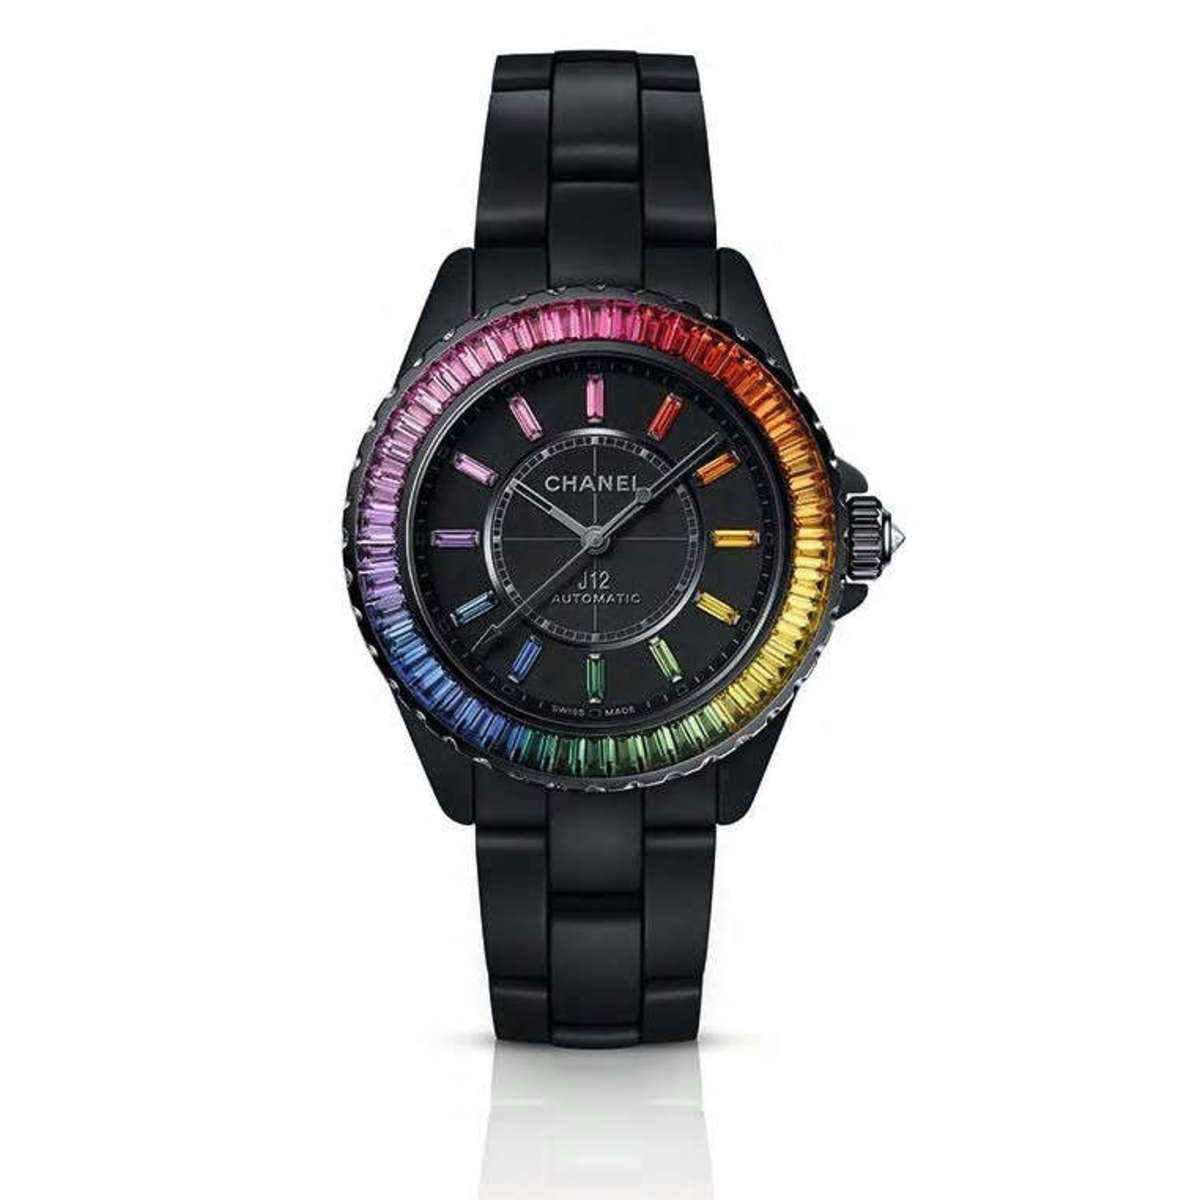 The Daft Punk-inspired J12 Chanel Electro watch in black.